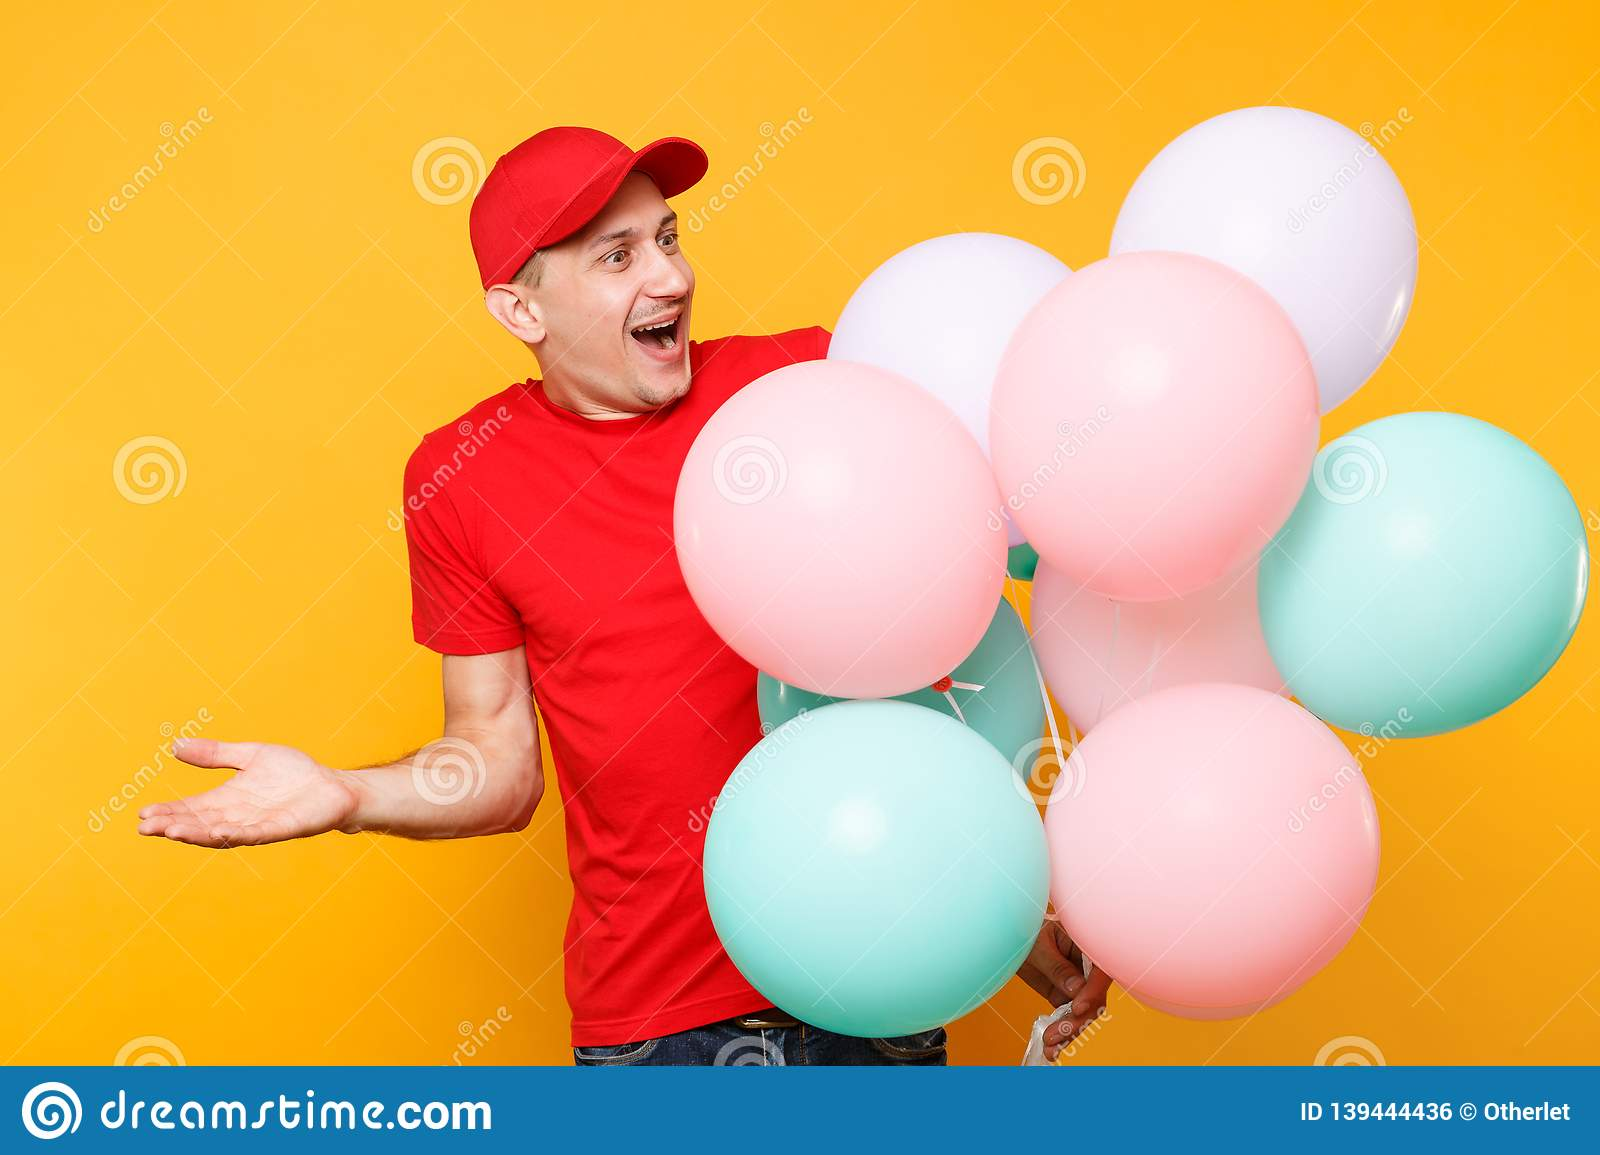 Delivery man in red uniform isolated on yellow orange background. Professional male employee in cap, t-shirt courier